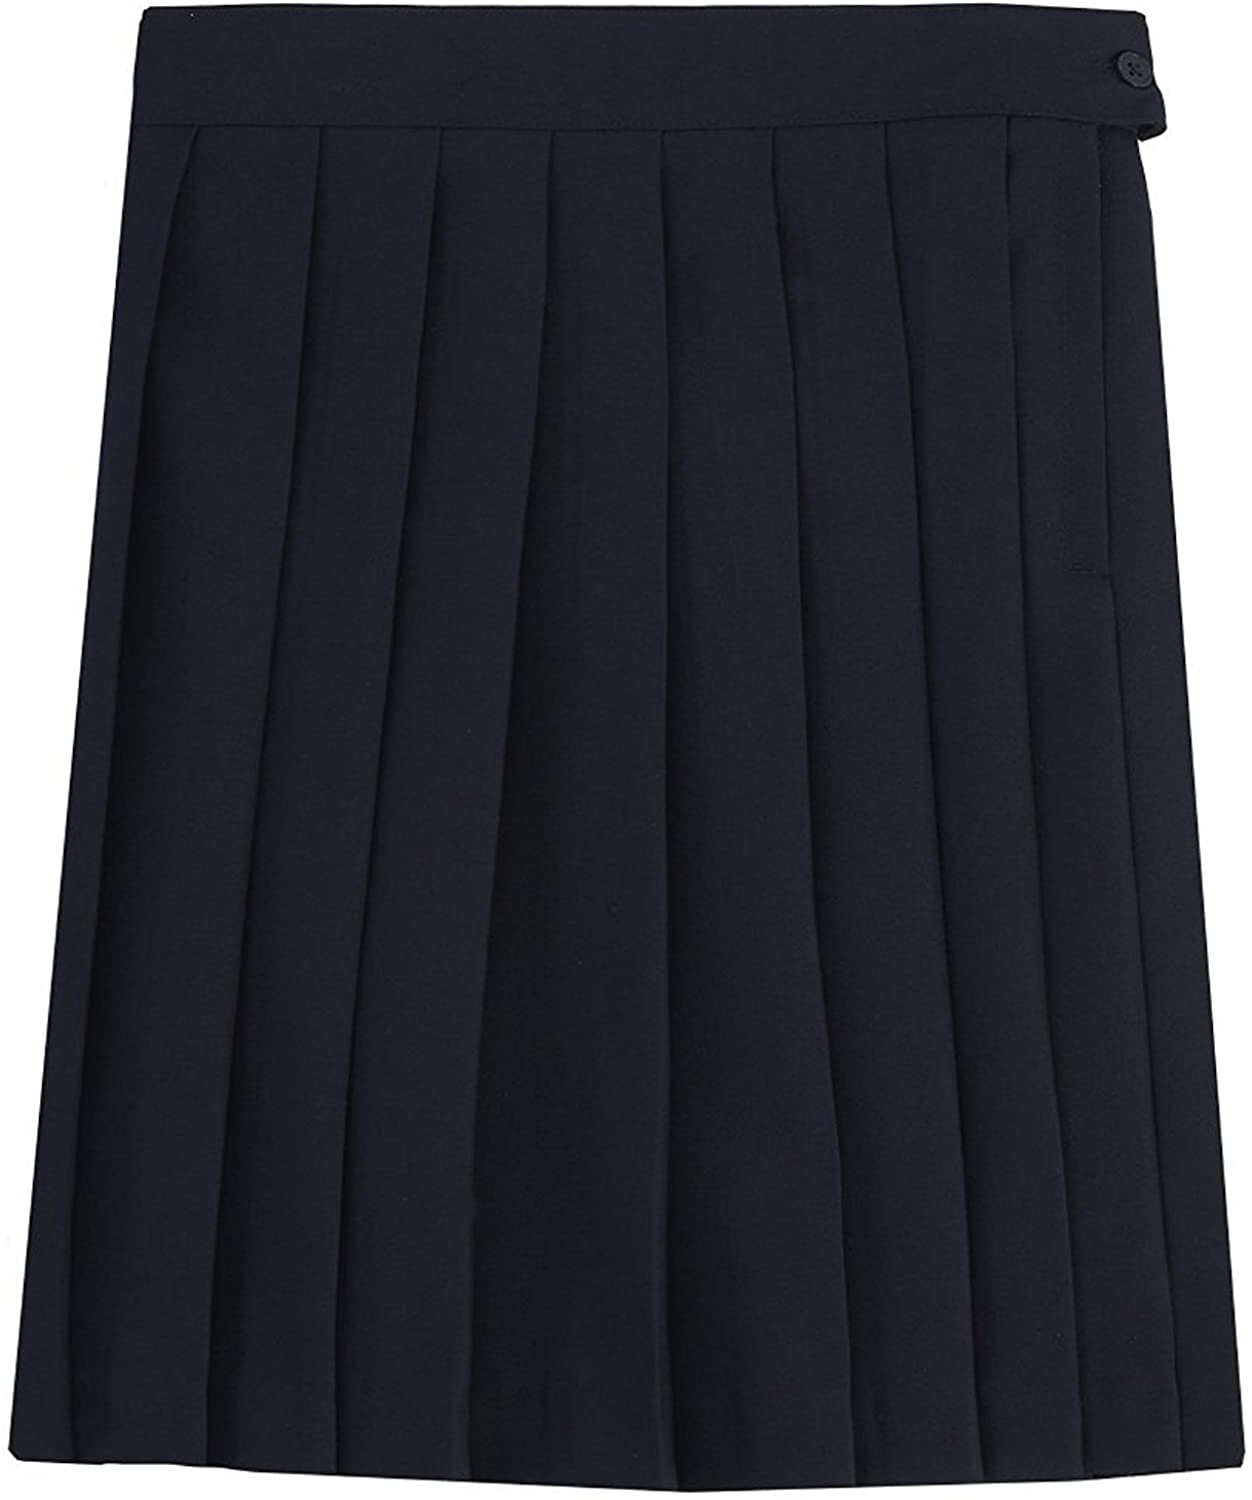 French Toast Girls Pleated Skirt School Uniform (Size 5, Navy)